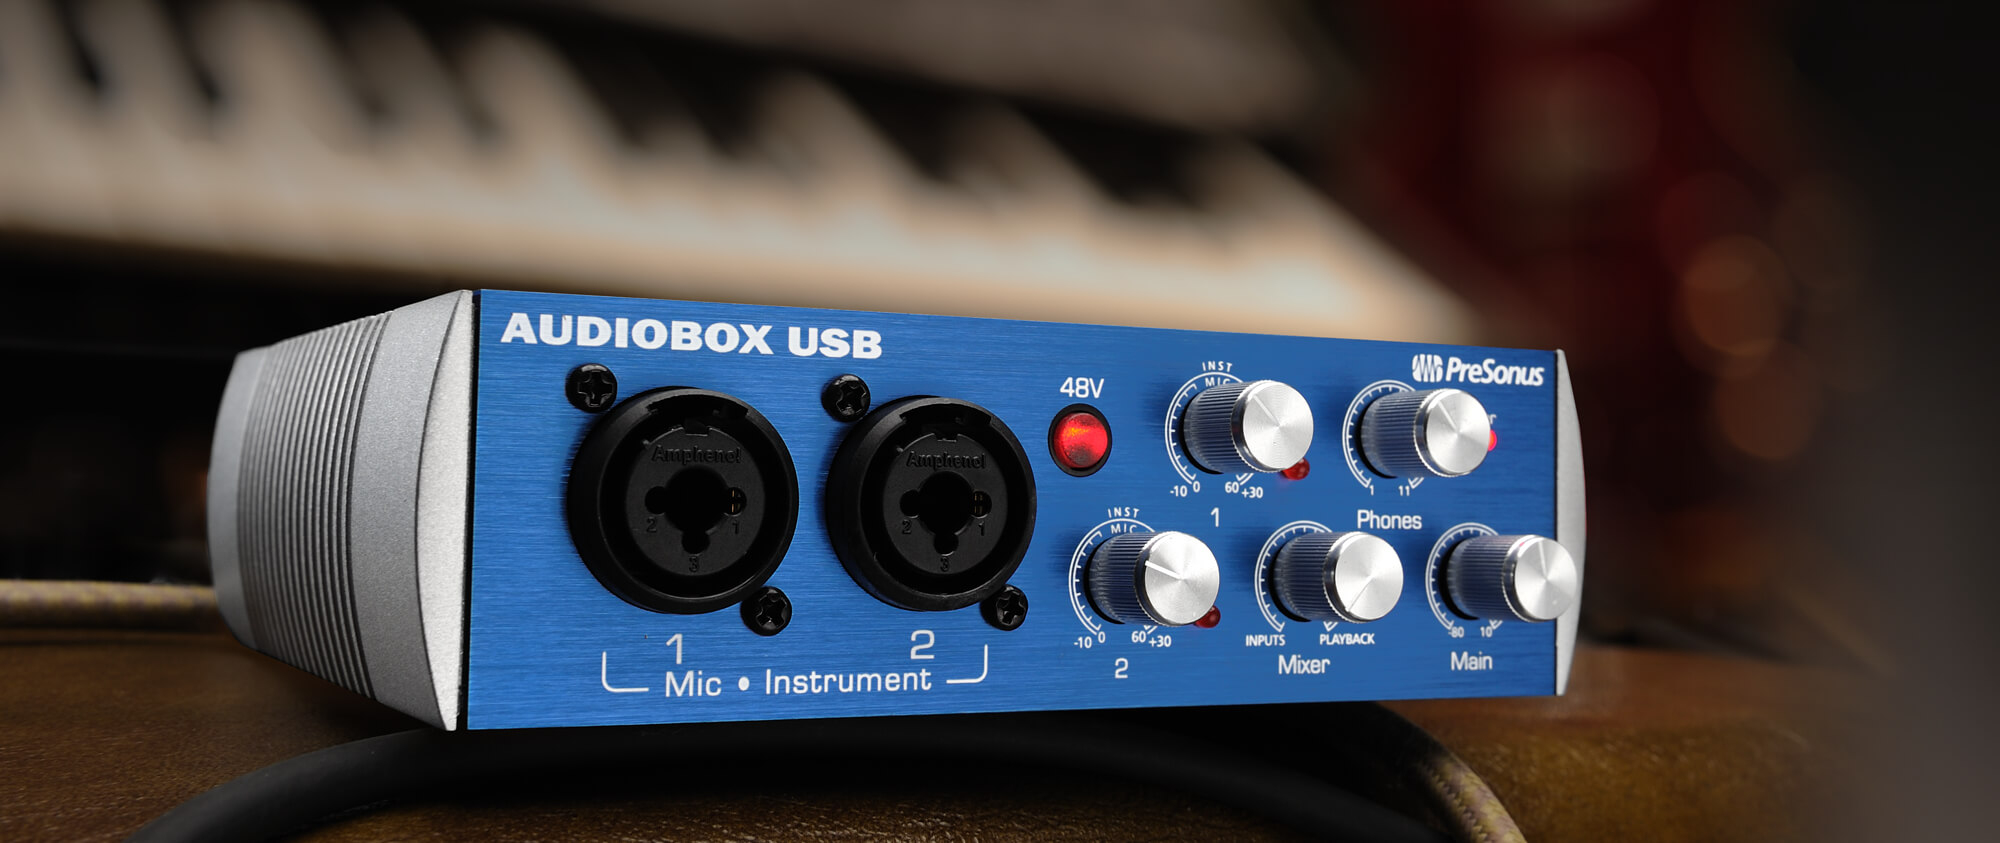 Audiobox Usb | Presonus - M Audio Producer Usb Repair Wiring Diagram